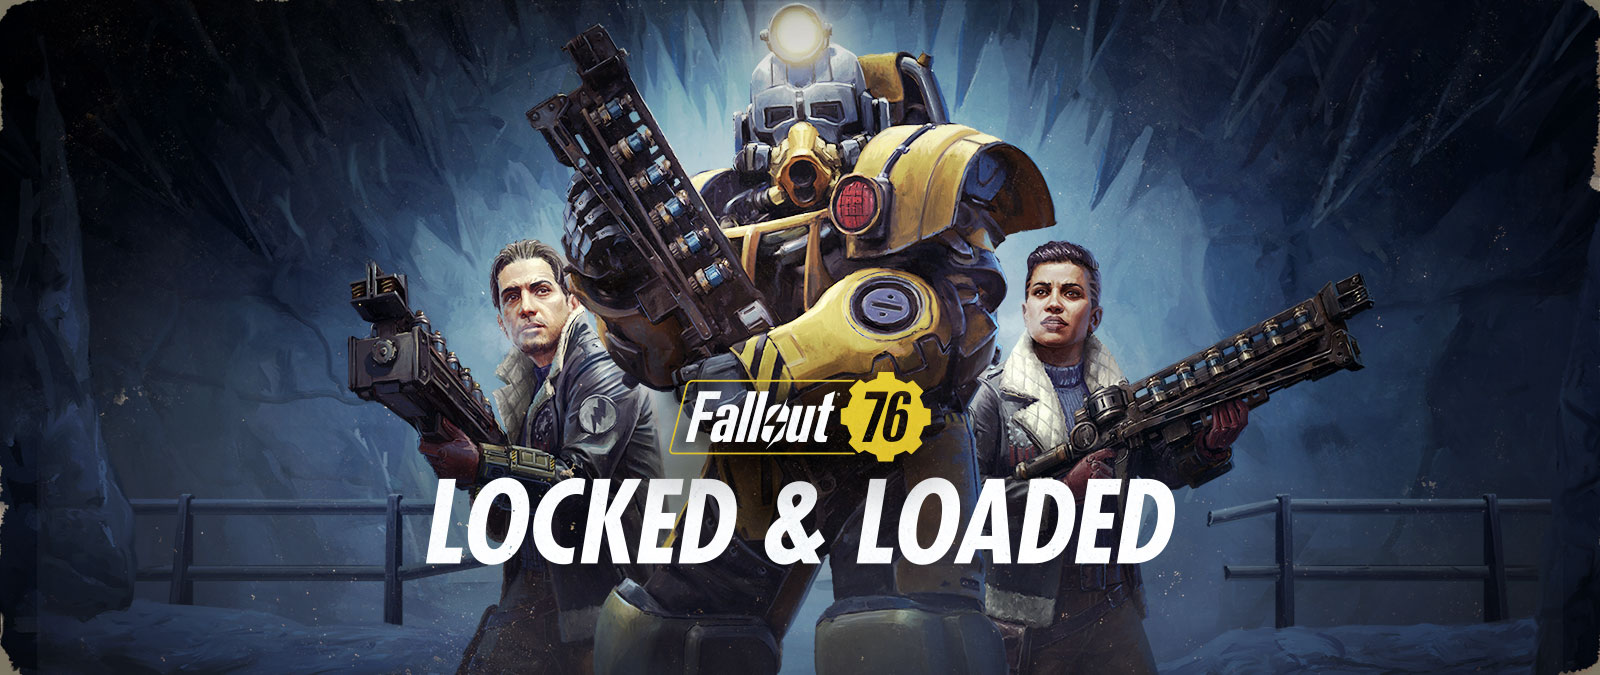 Fallout 76 Locked and Loaded, 1 character in Power Armor and 2 others behind hold up their guns